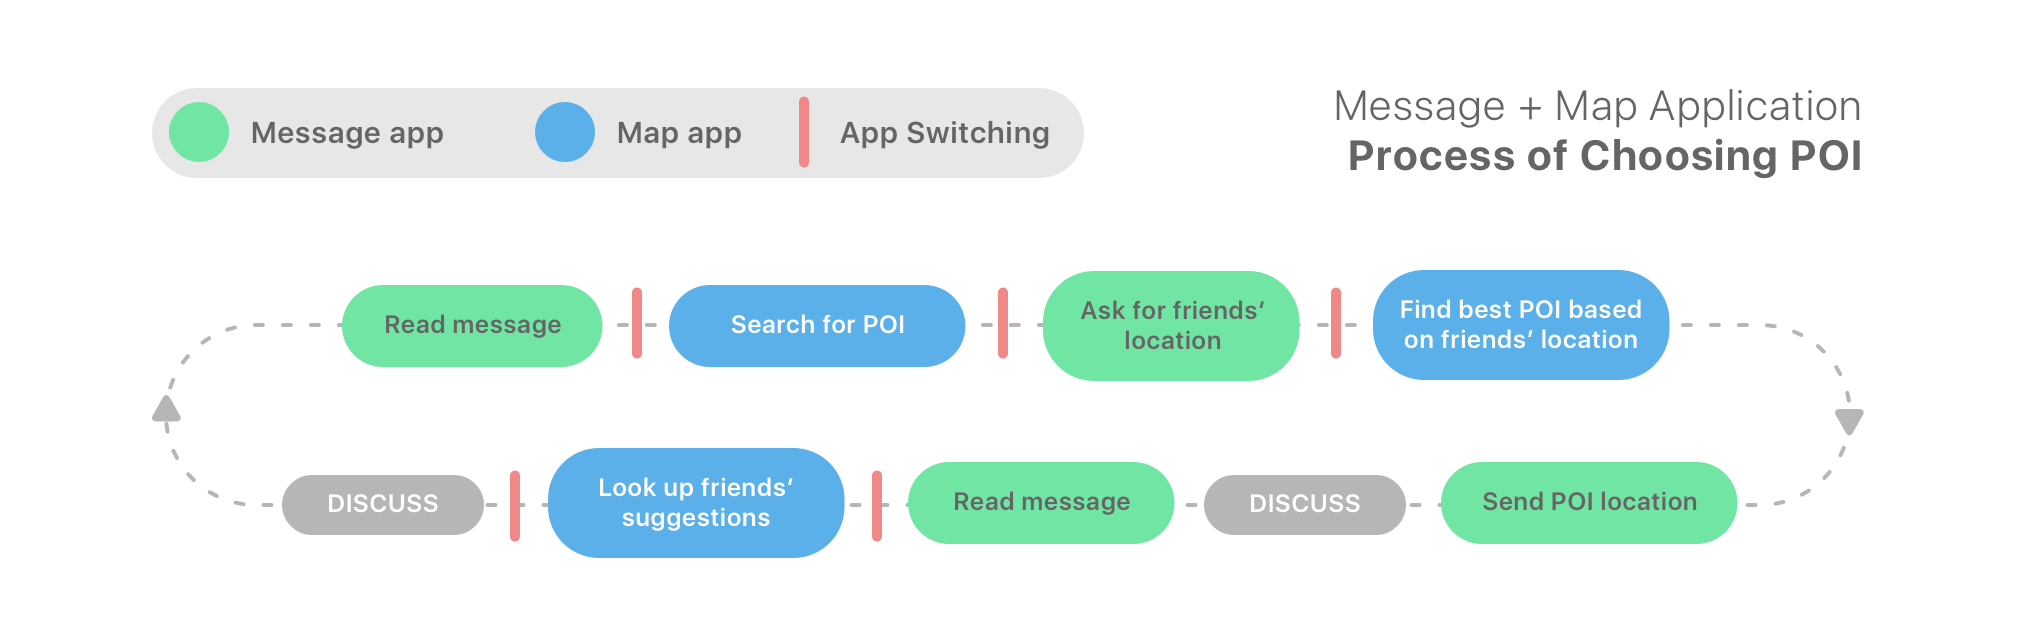 The diagram of how app switching between message and map occur when a group is choosing POI (Point Of Interest)